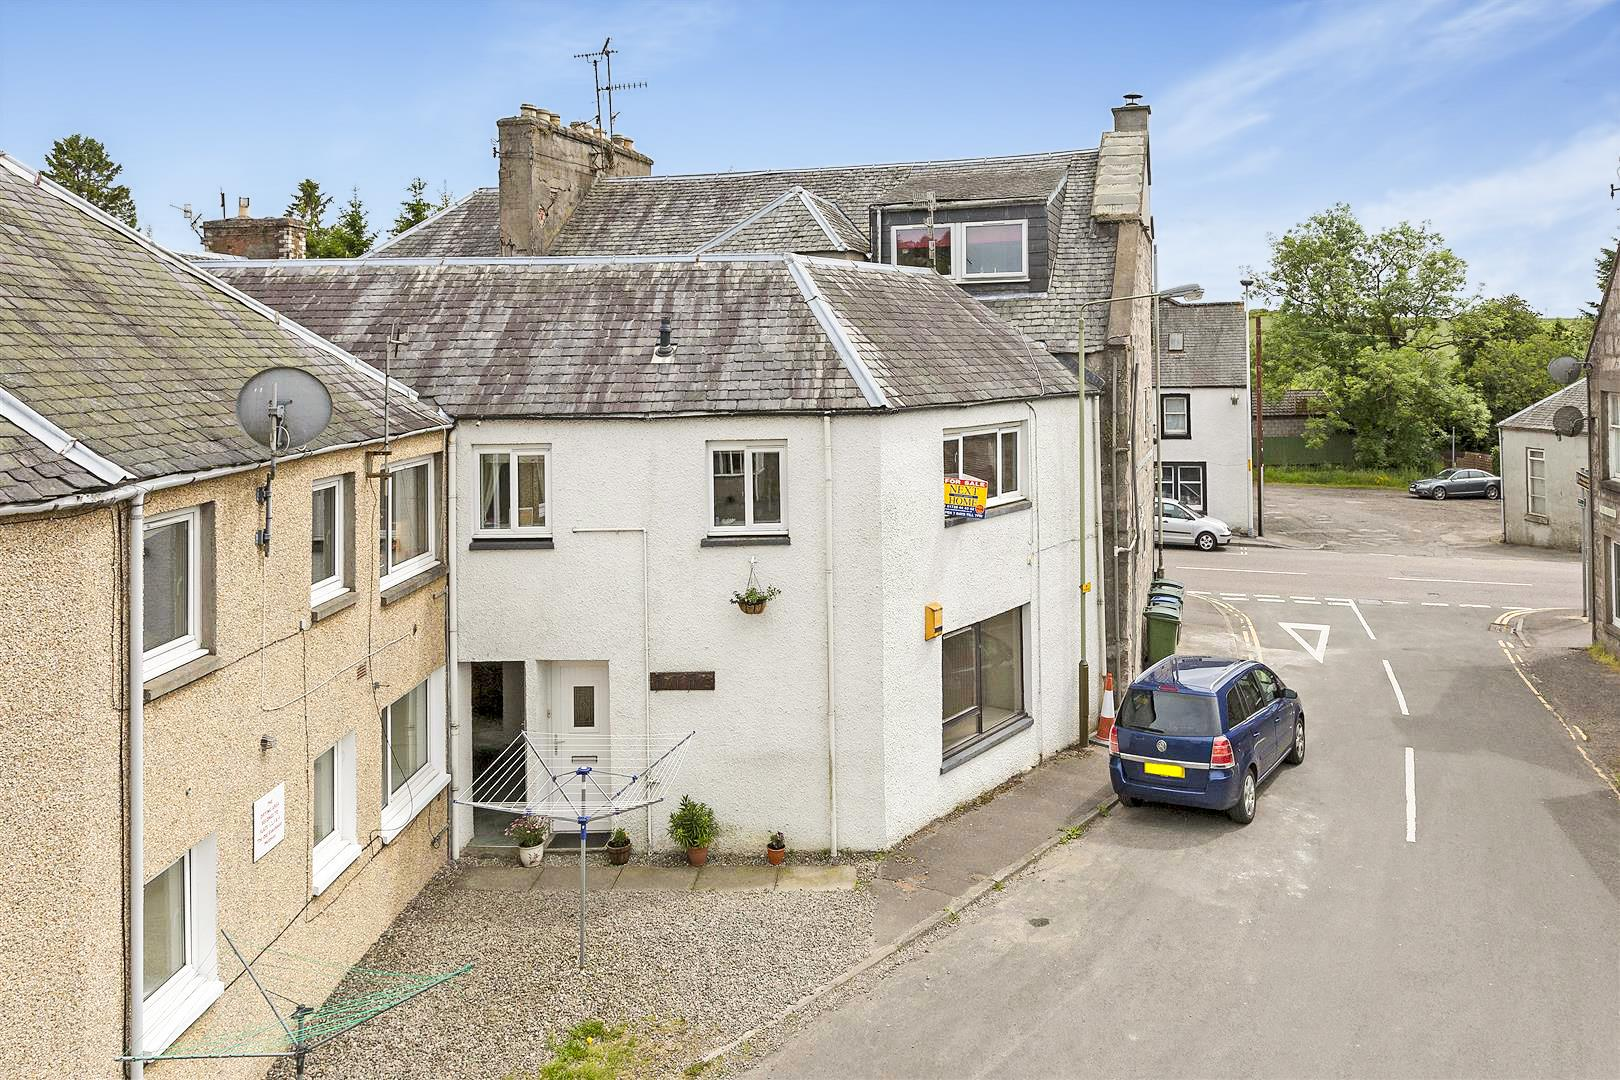 Flat 5, The Square, Methven, Perthshire, PH1 3PE, UK